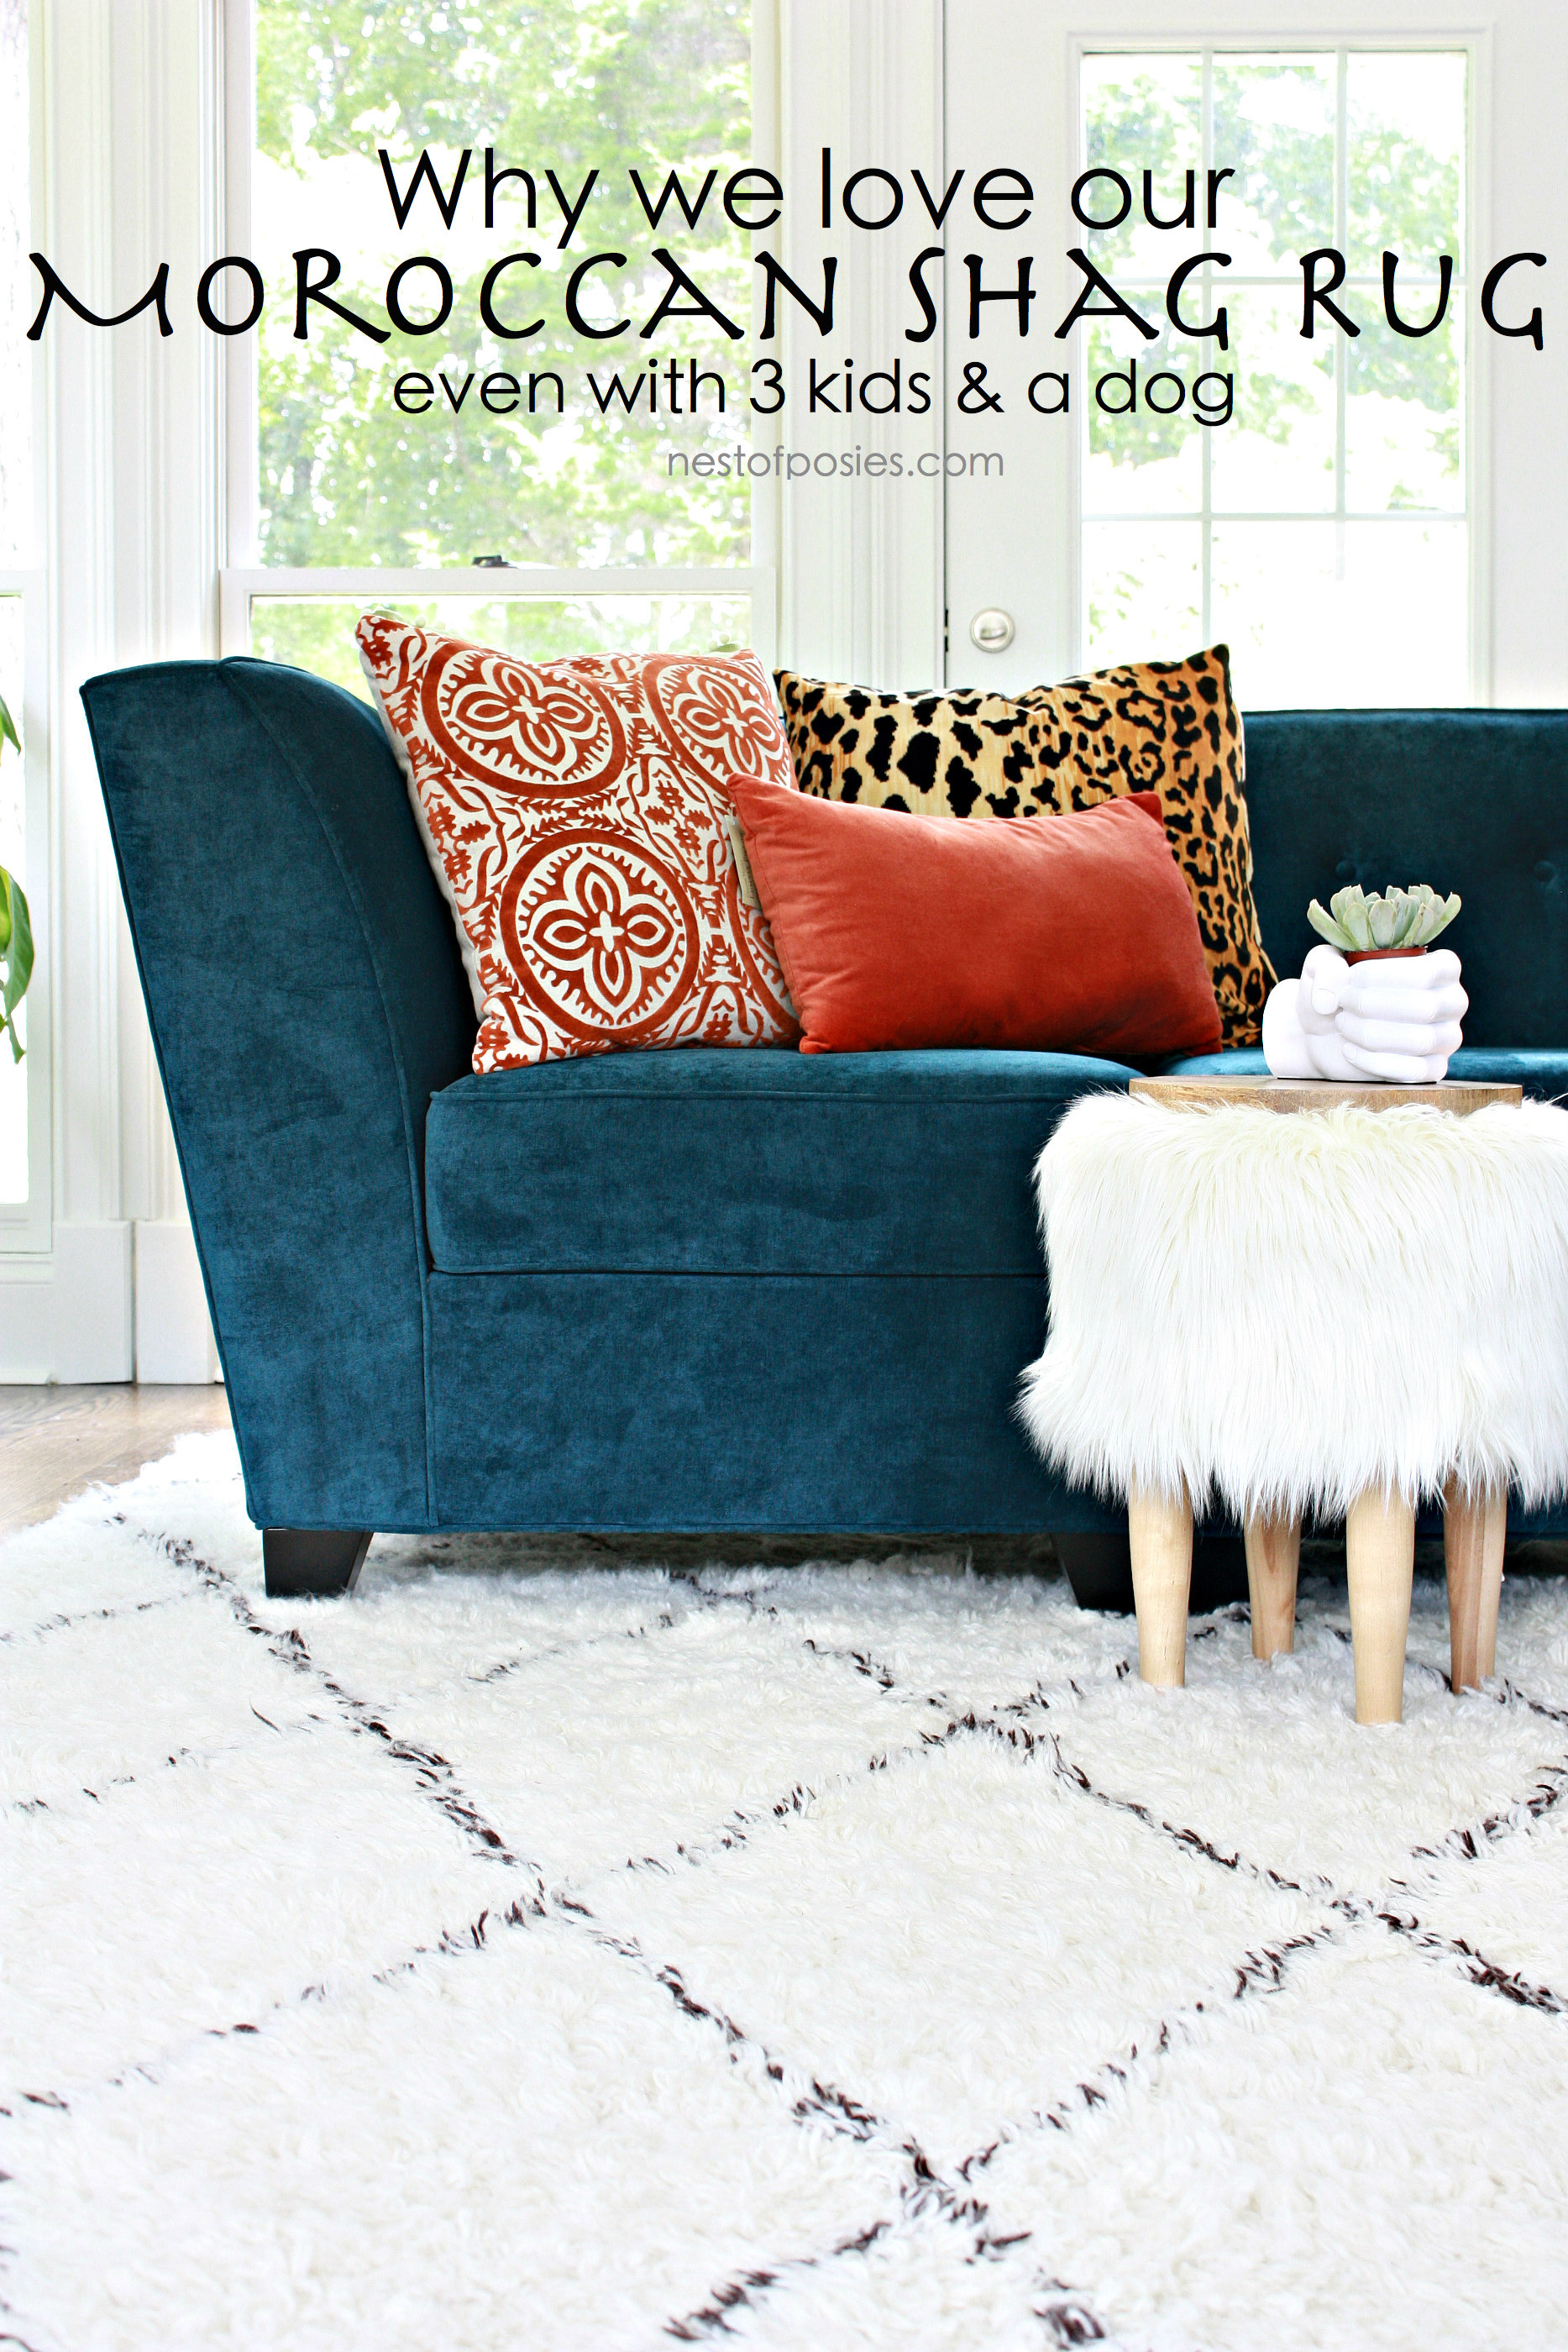 why we love our moroccan shag rug -